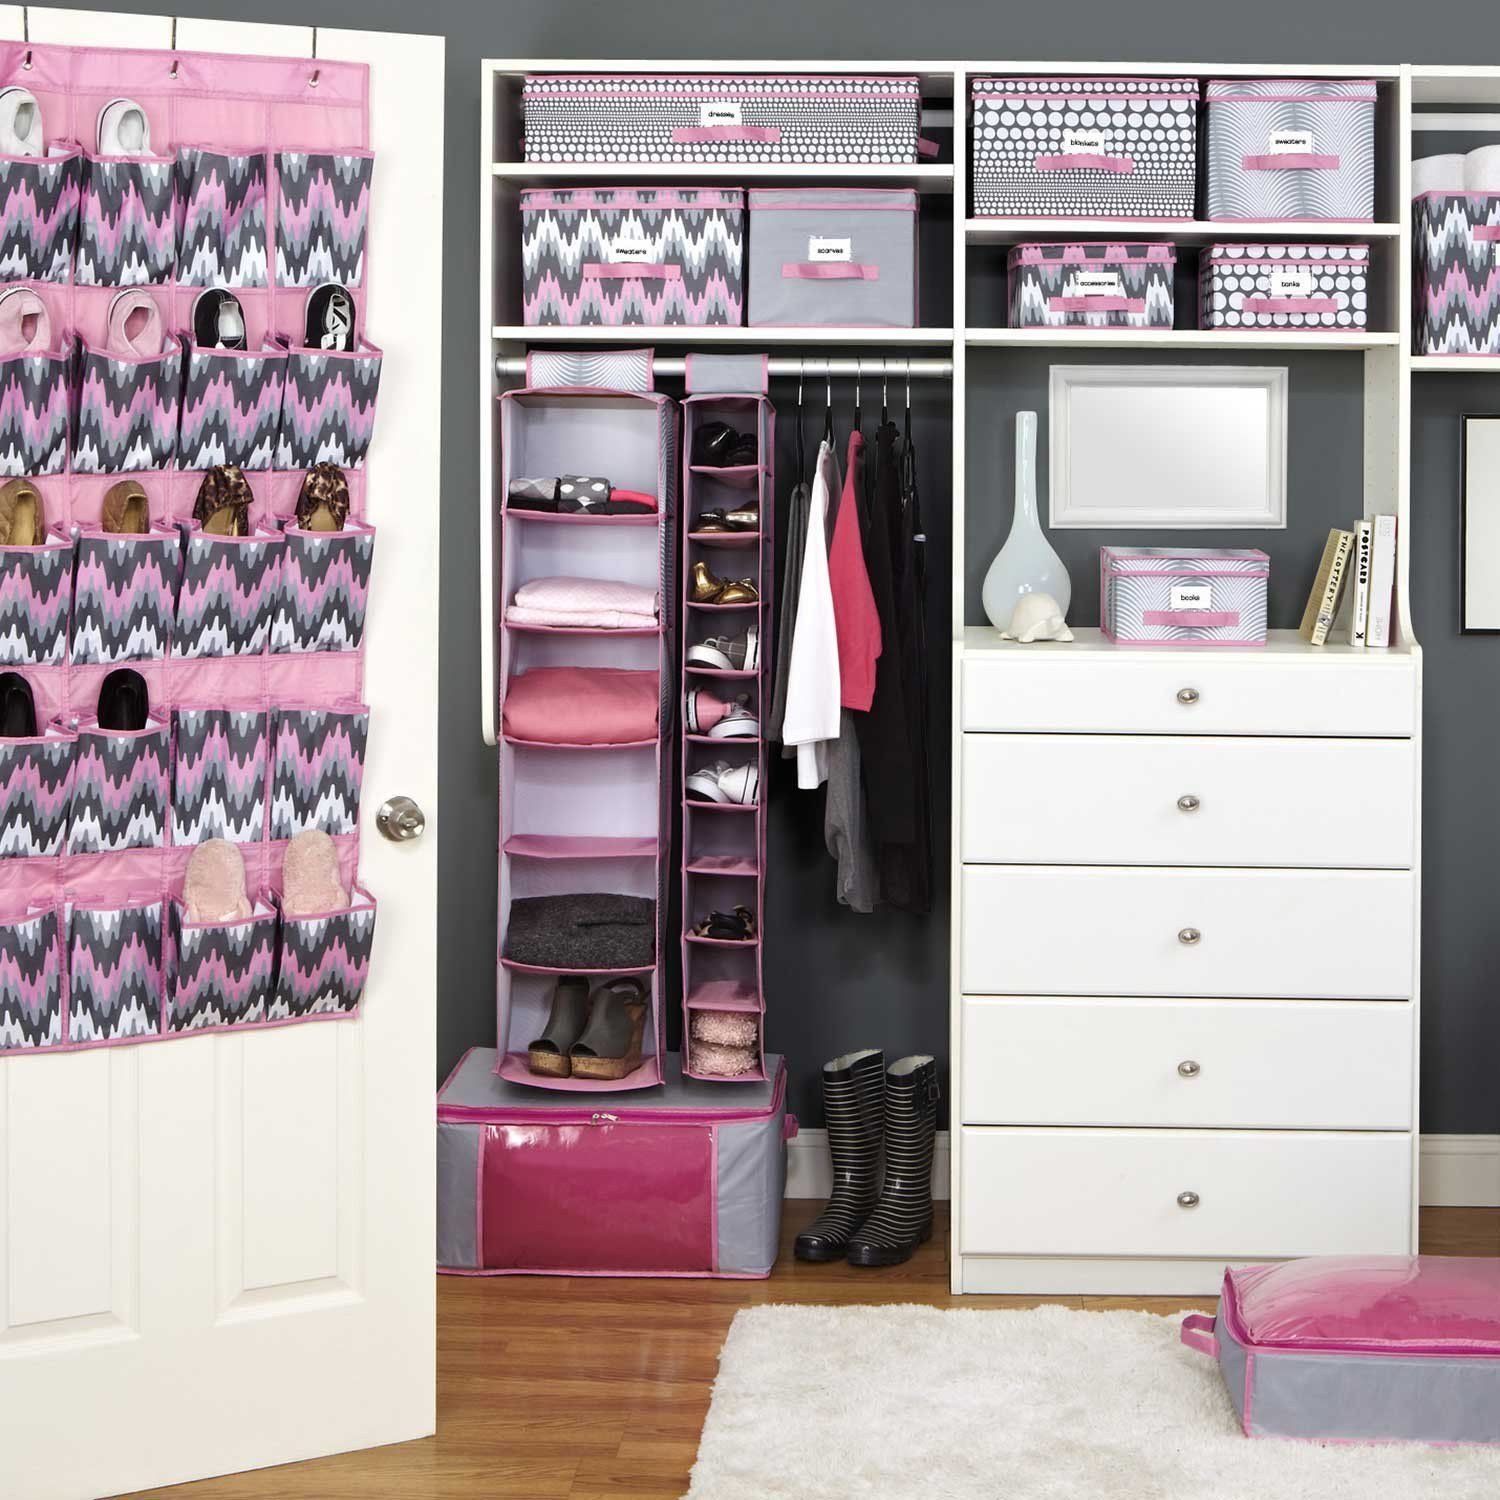 Cute Closest For A Teen Girl. I Think My Niece Would Love This. Organized  ClosetsCloset CollectionTeen Bedroom LayoutBedroom Design ...